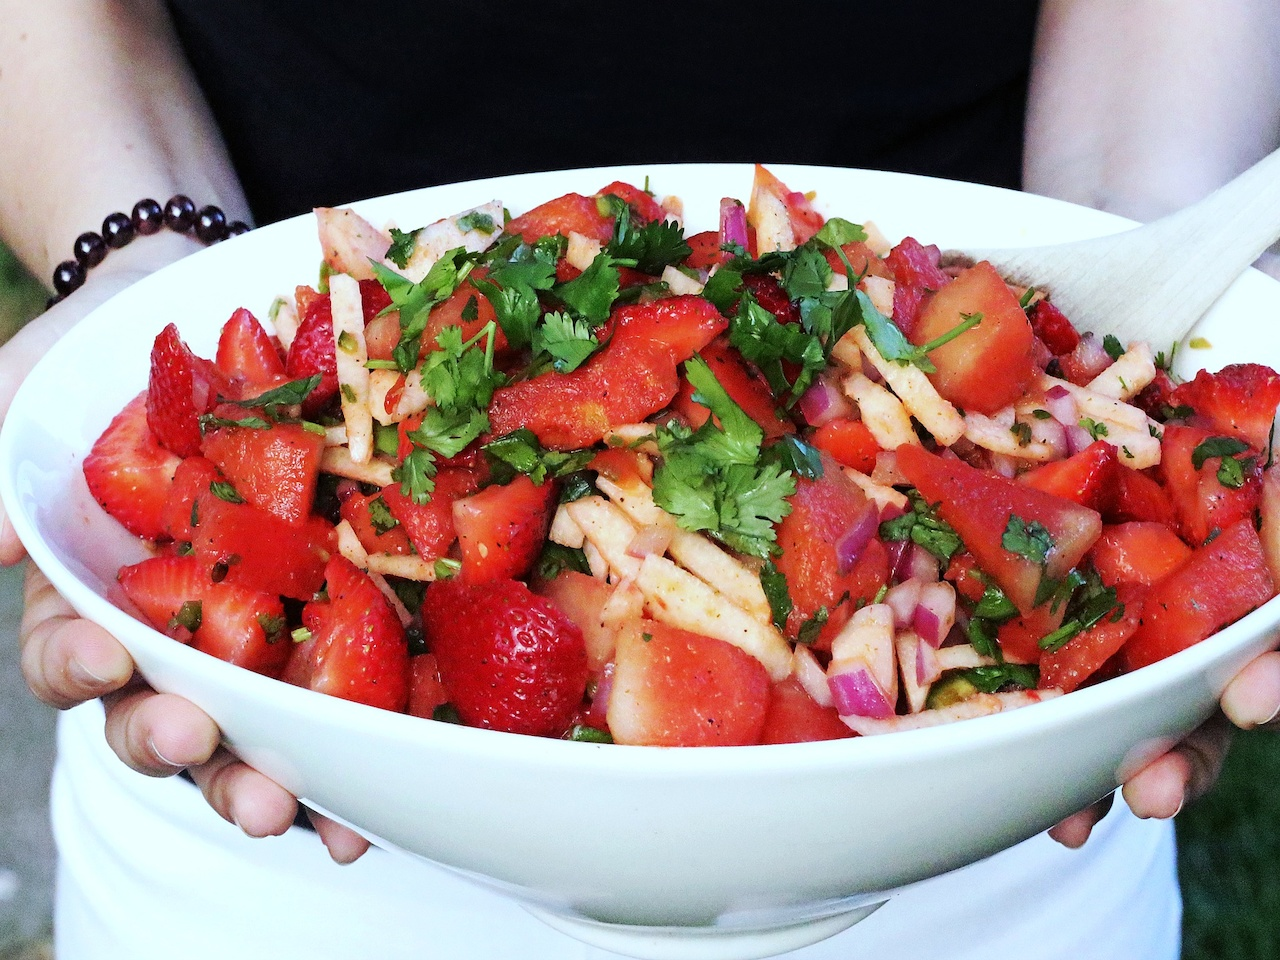 Spicy Watermelon, Strawberry & Jicama Salad — perfect for summer!